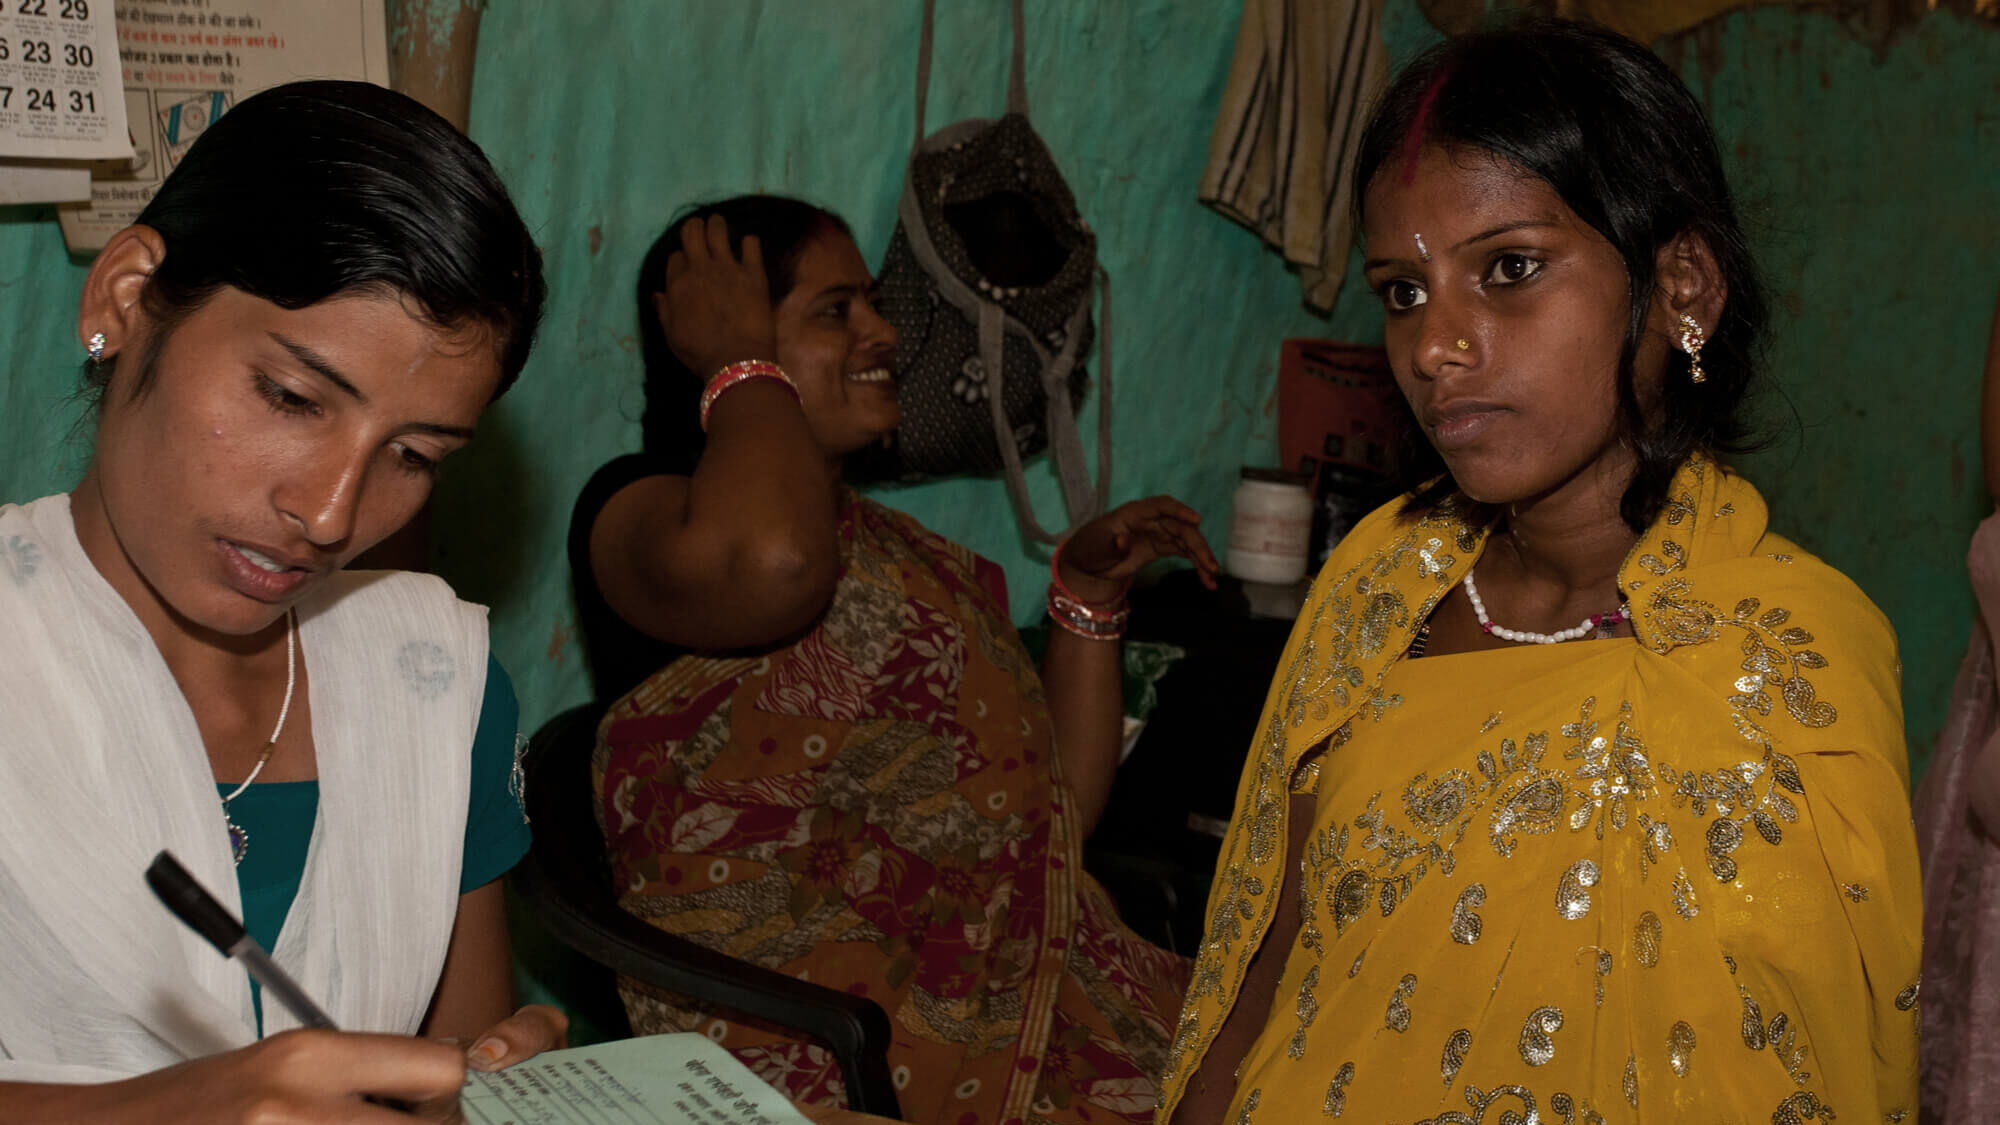 A woman conducts an interview at a medical facility in India.